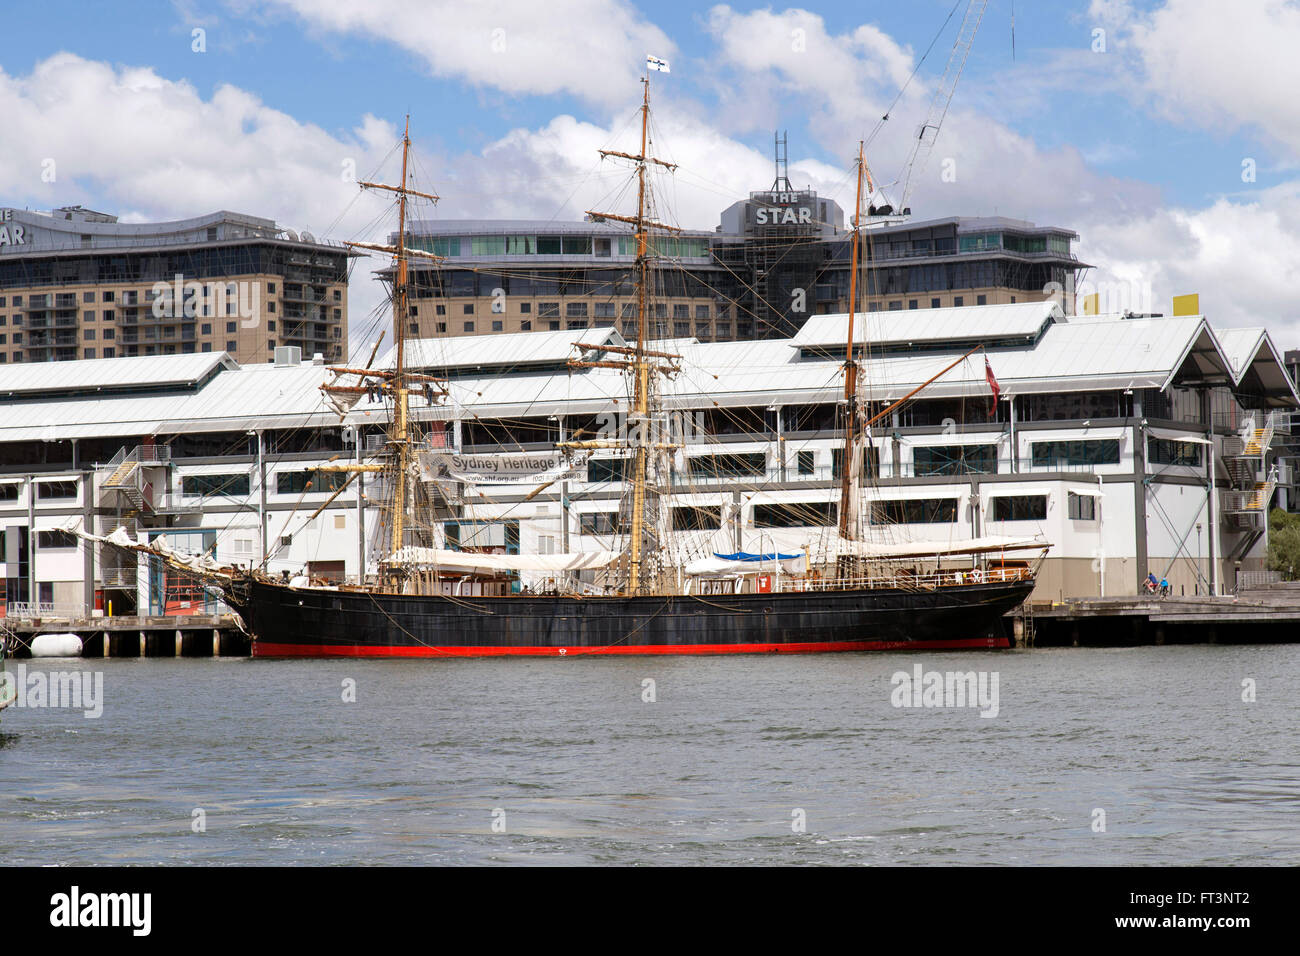 Sydney Heritage Fleet with Star Casino in background - Stock Image